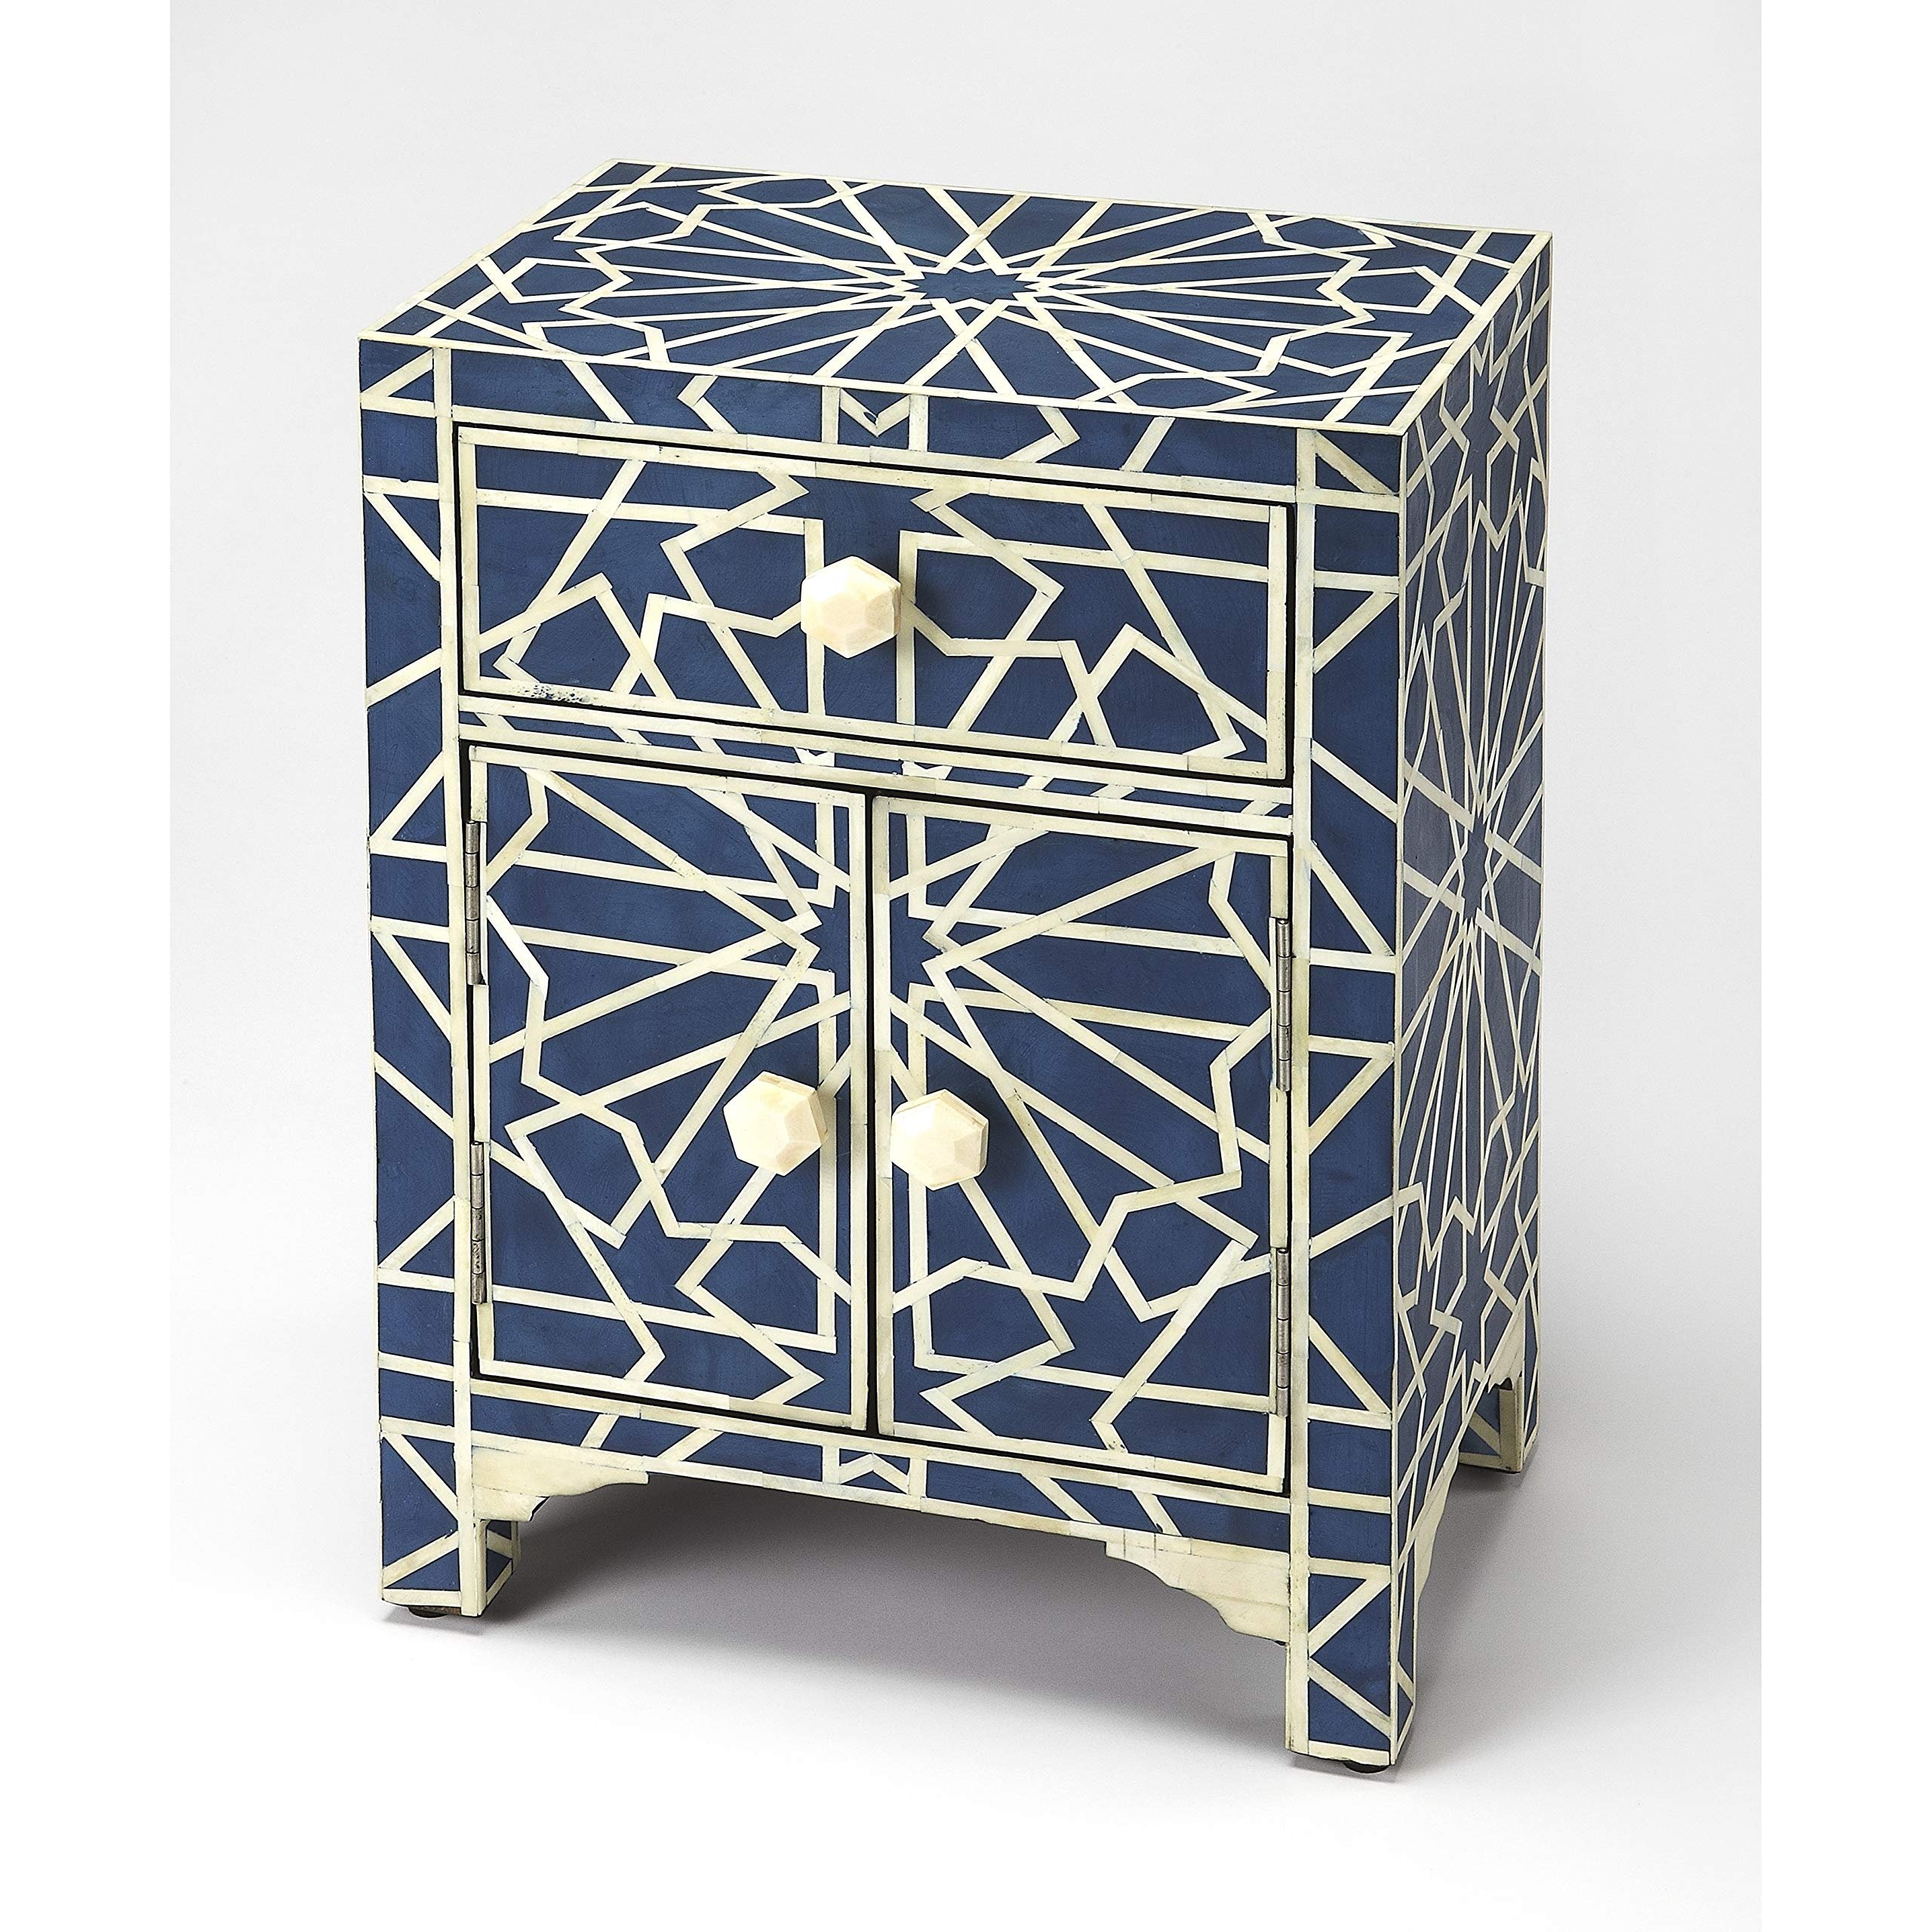 Camile Transitional Rectangular Blue Bone Inlay Accent Chest Rectangle MDF Resin Distressed Finish by Unknown